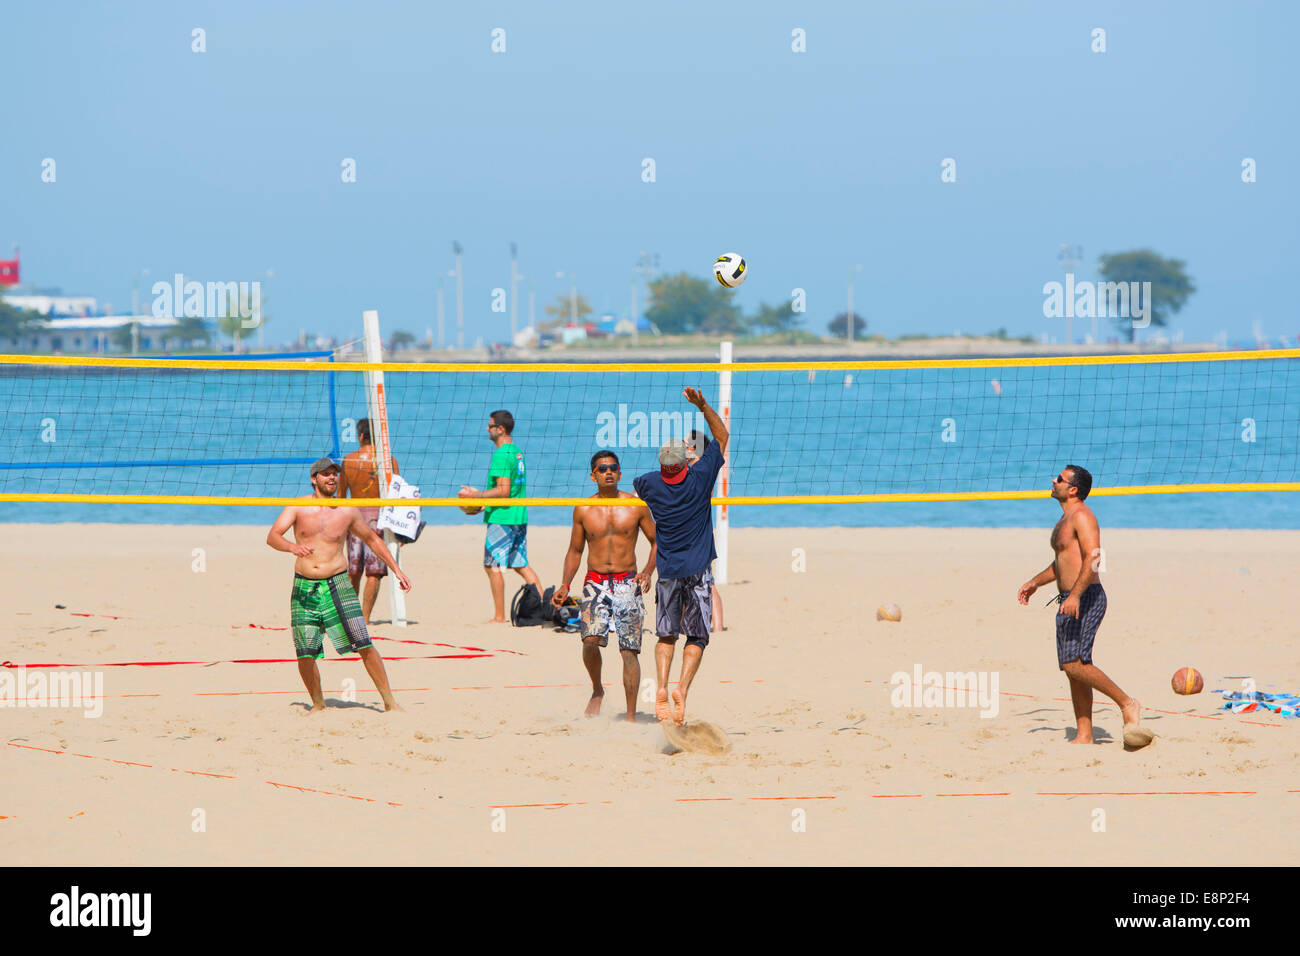 Beach Volley Ball, Chicago Oak Street Beach - Stock Image